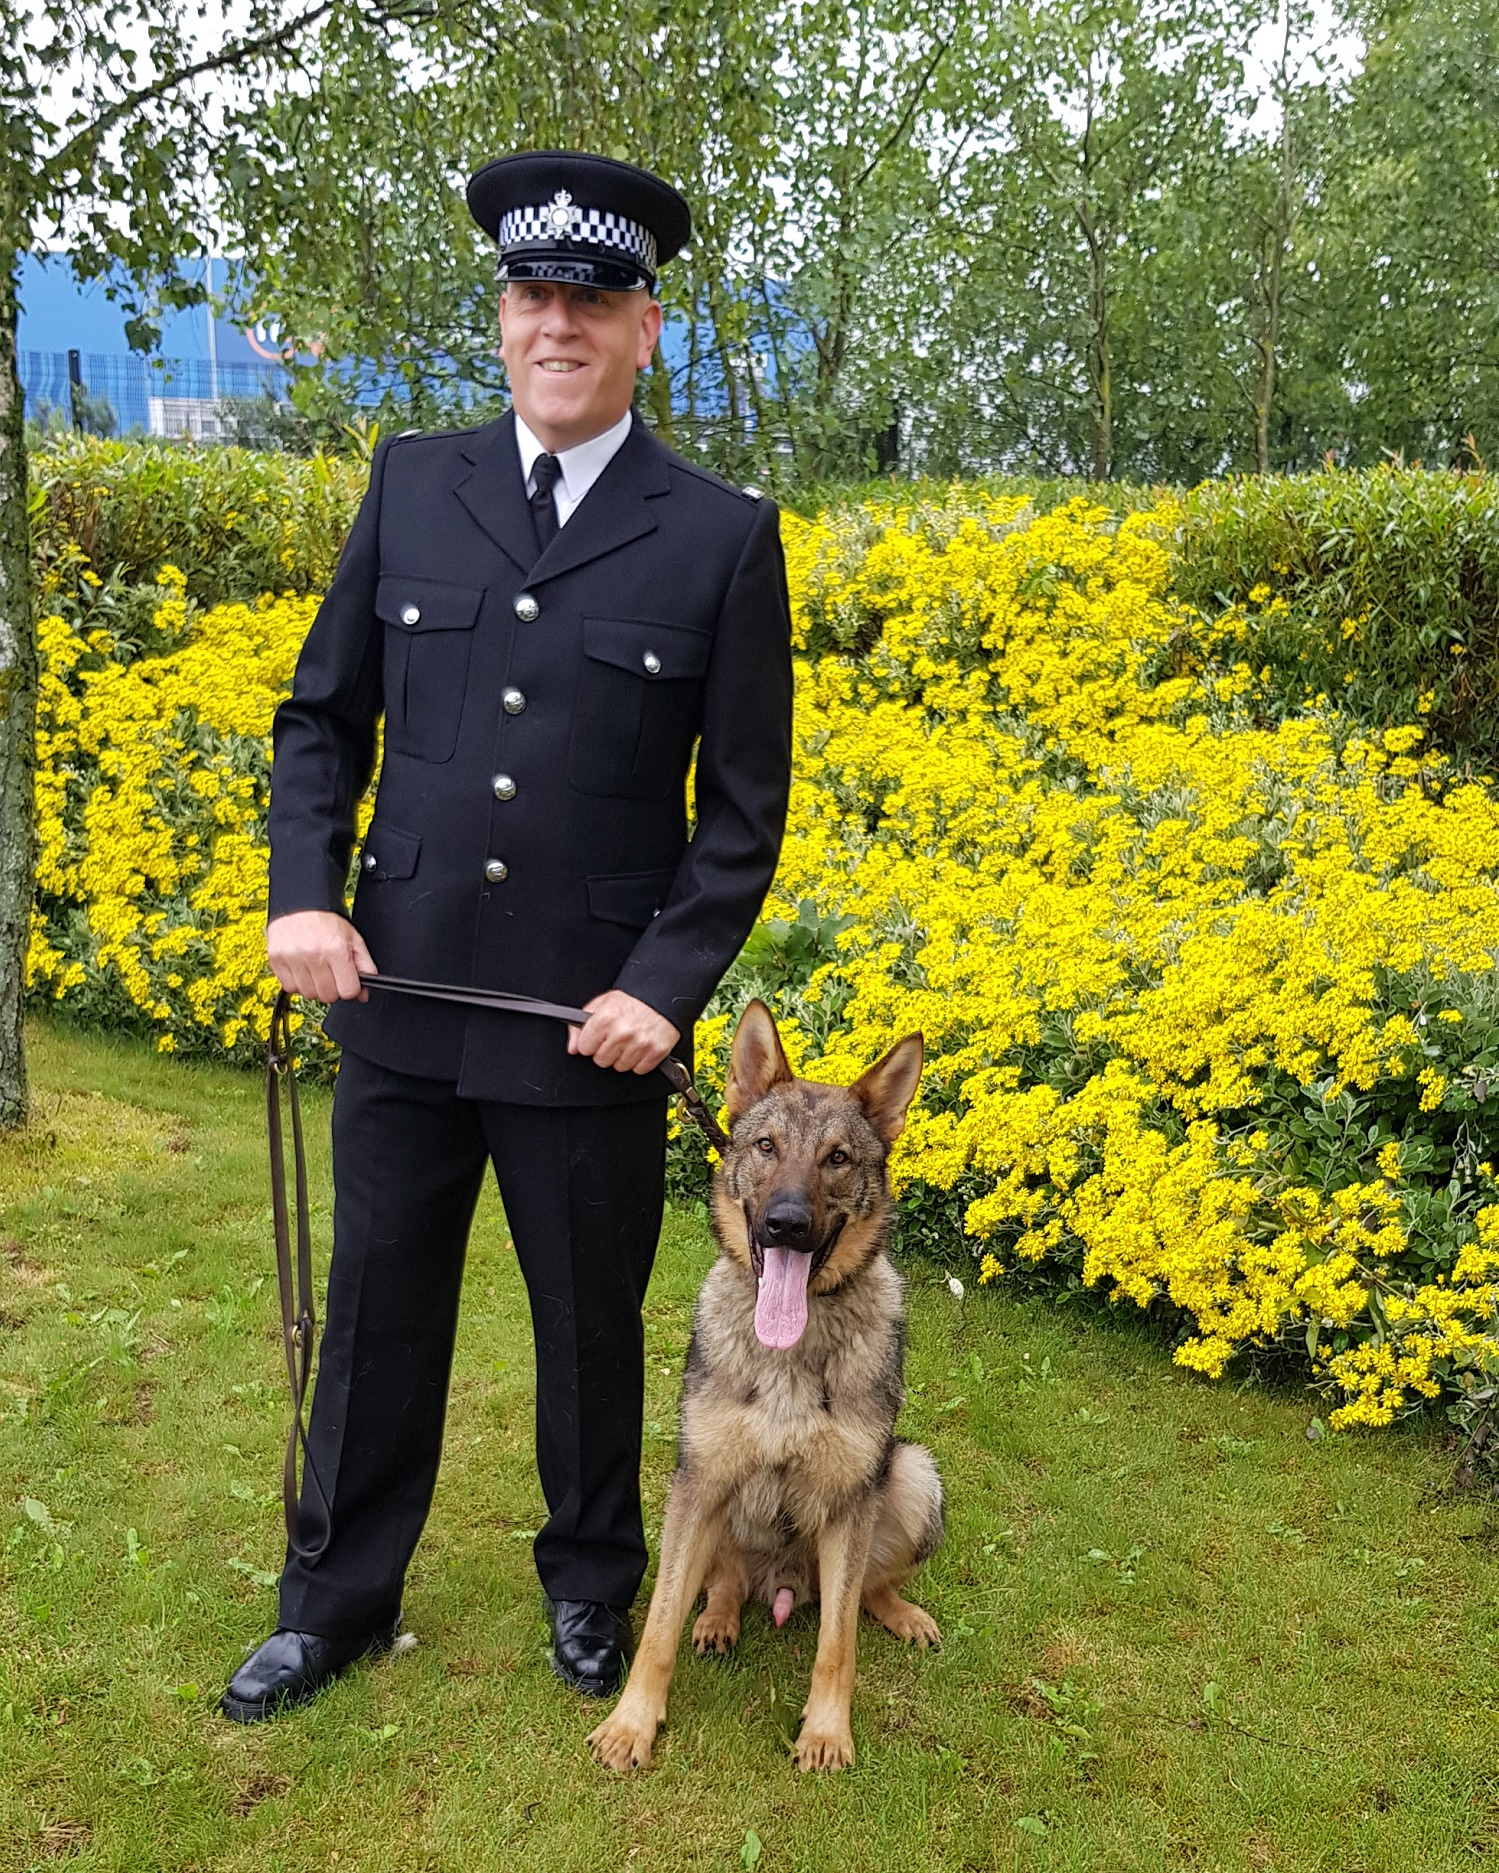 PC Wassell and his dog Caesar